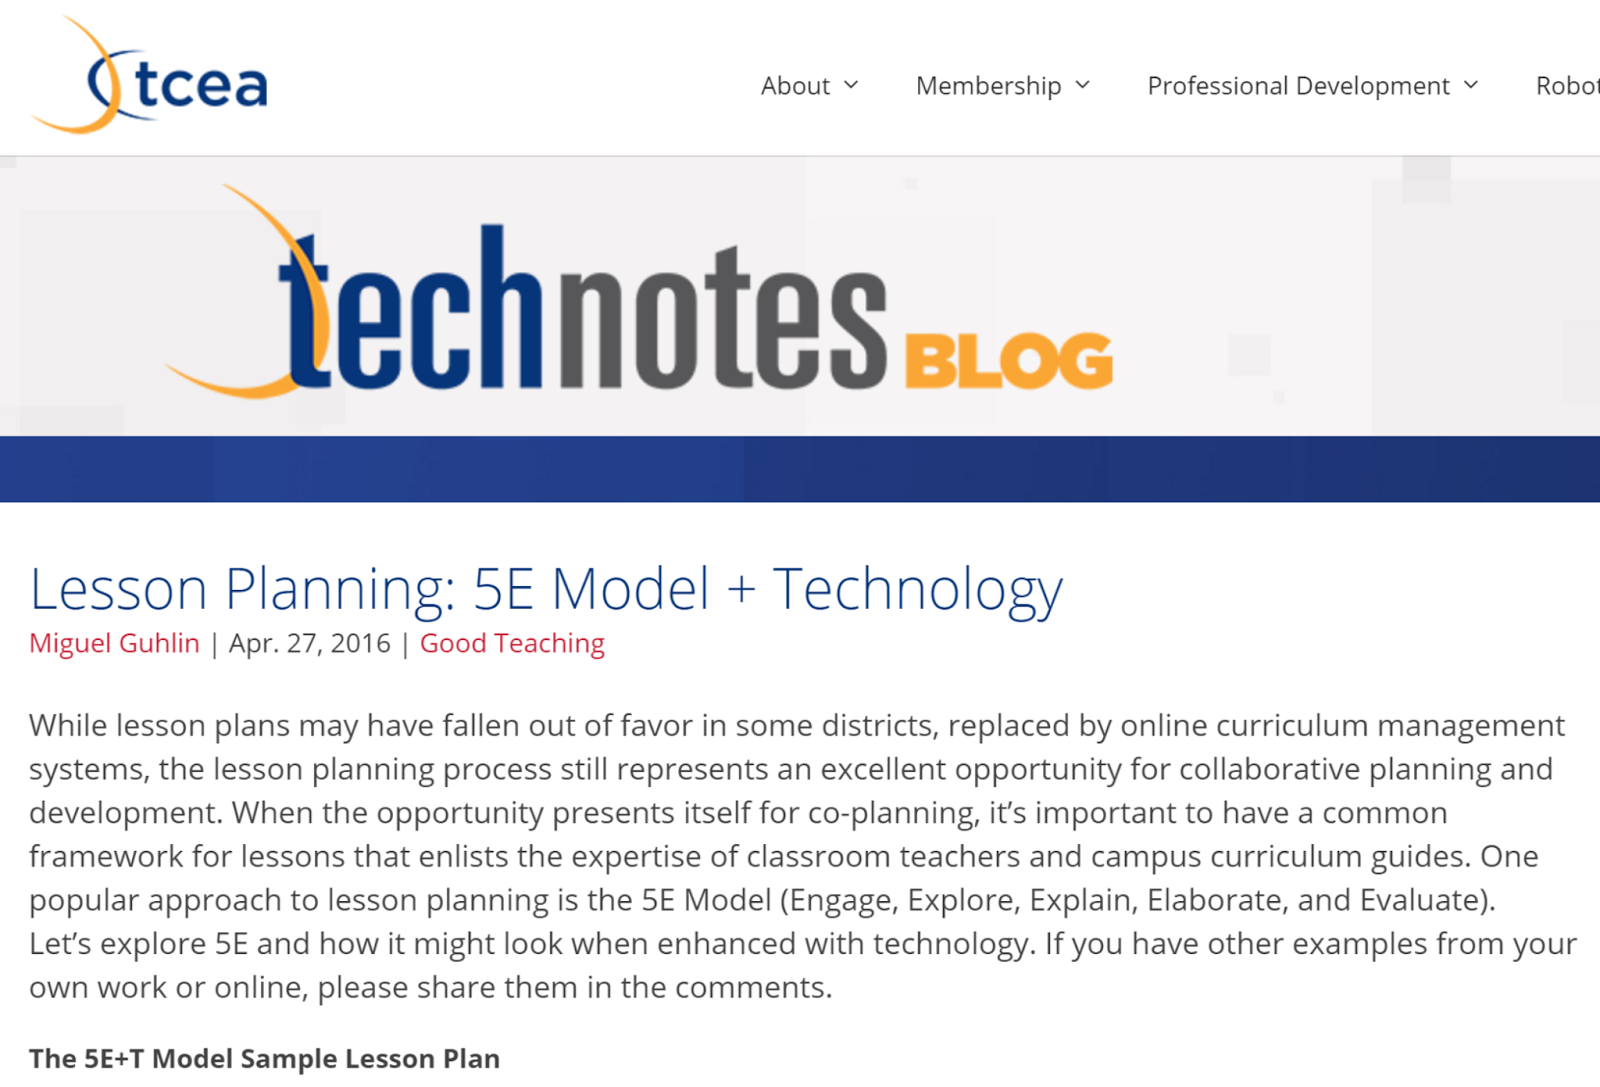 Tcea around the corner page 3 one popular approach to lesson planning is the 5e model engage explore explain elaborate and evaluate lets explore 5e and how it might look when fandeluxe Image collections